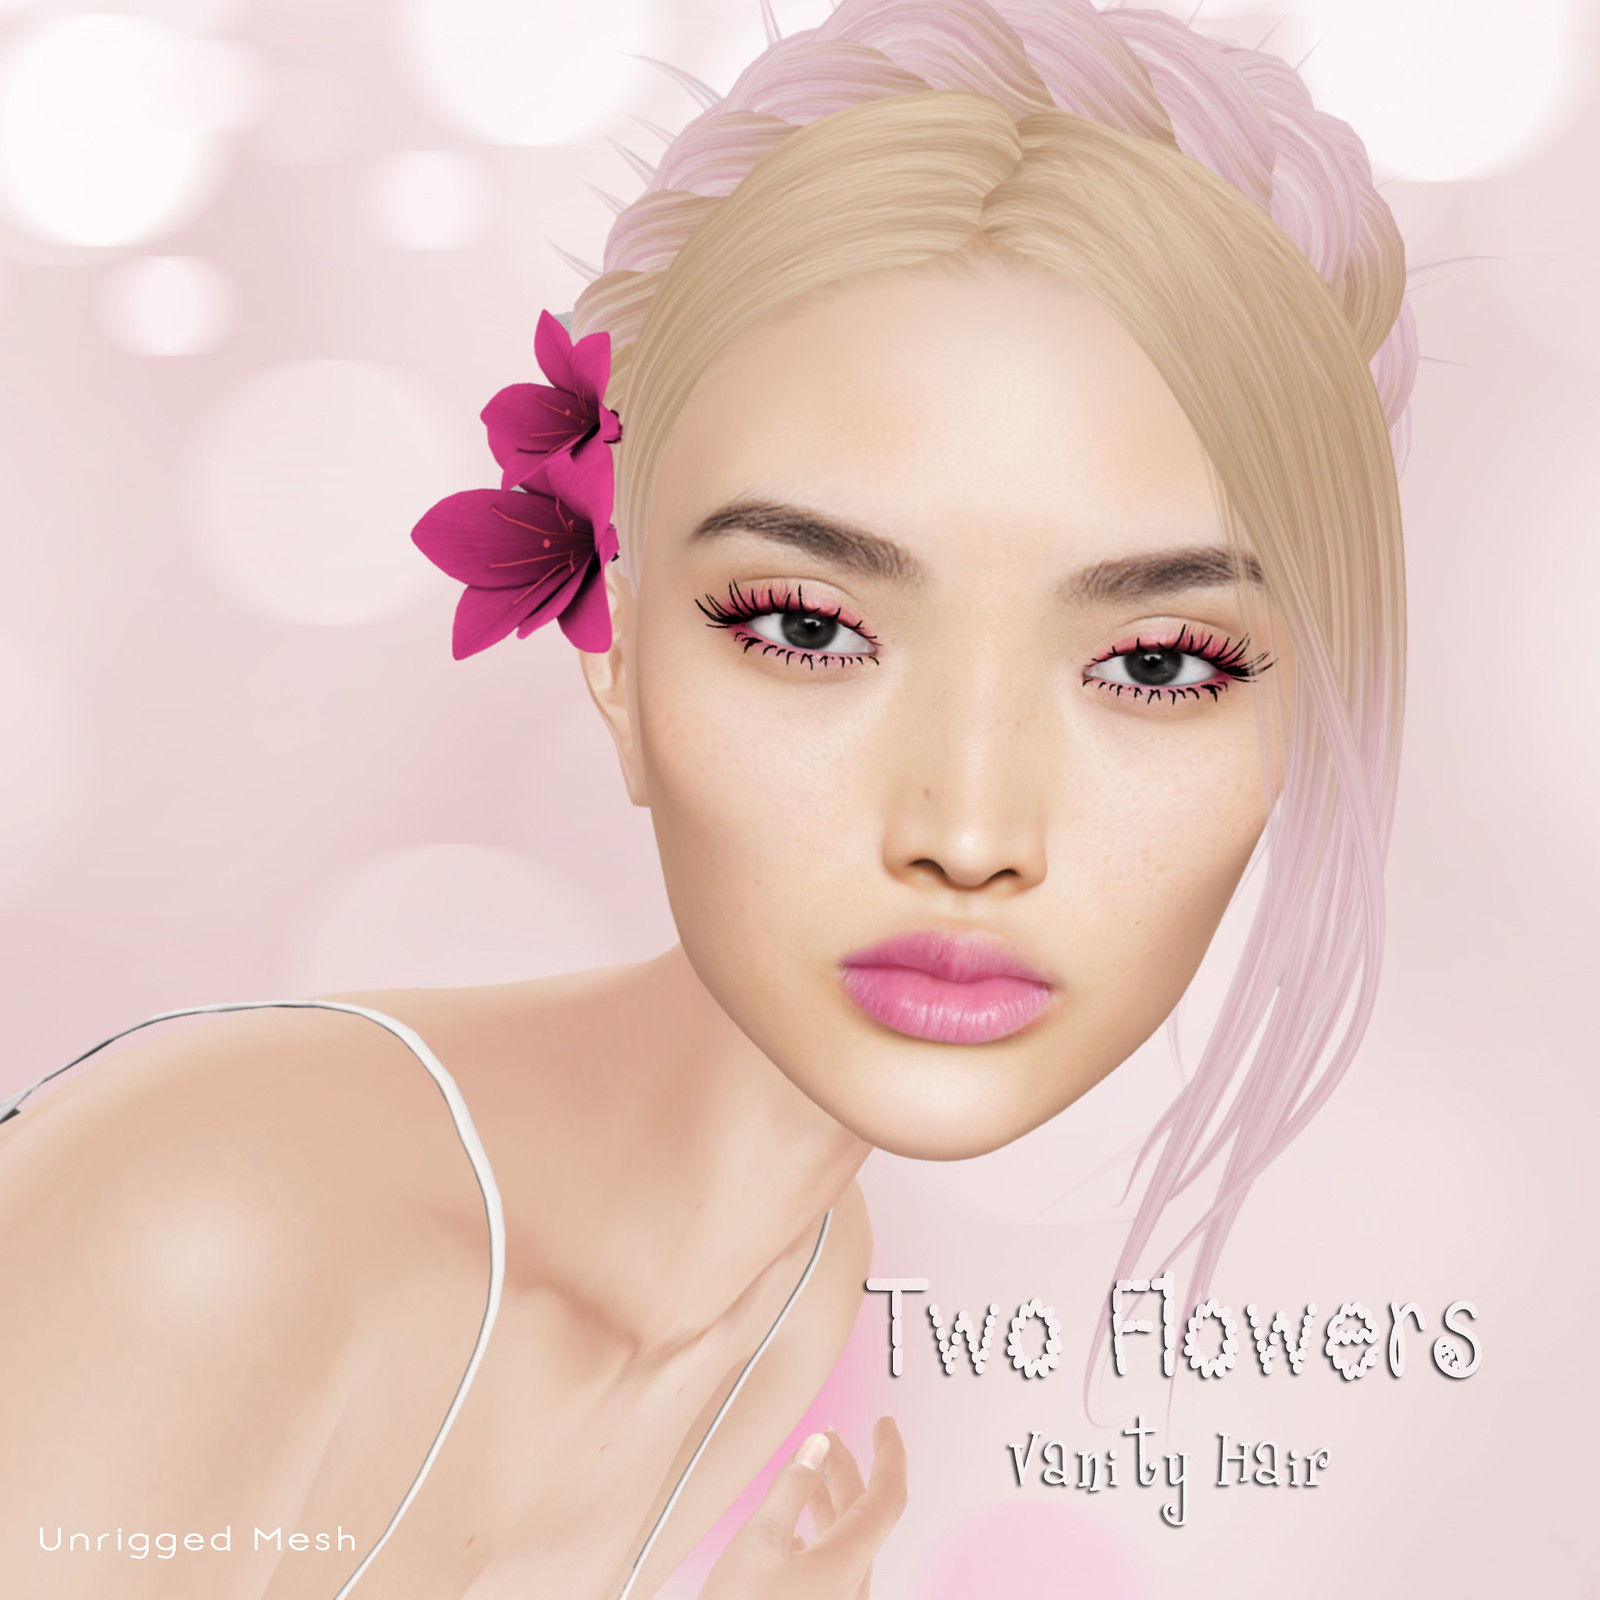 VanityHair@Flower Power